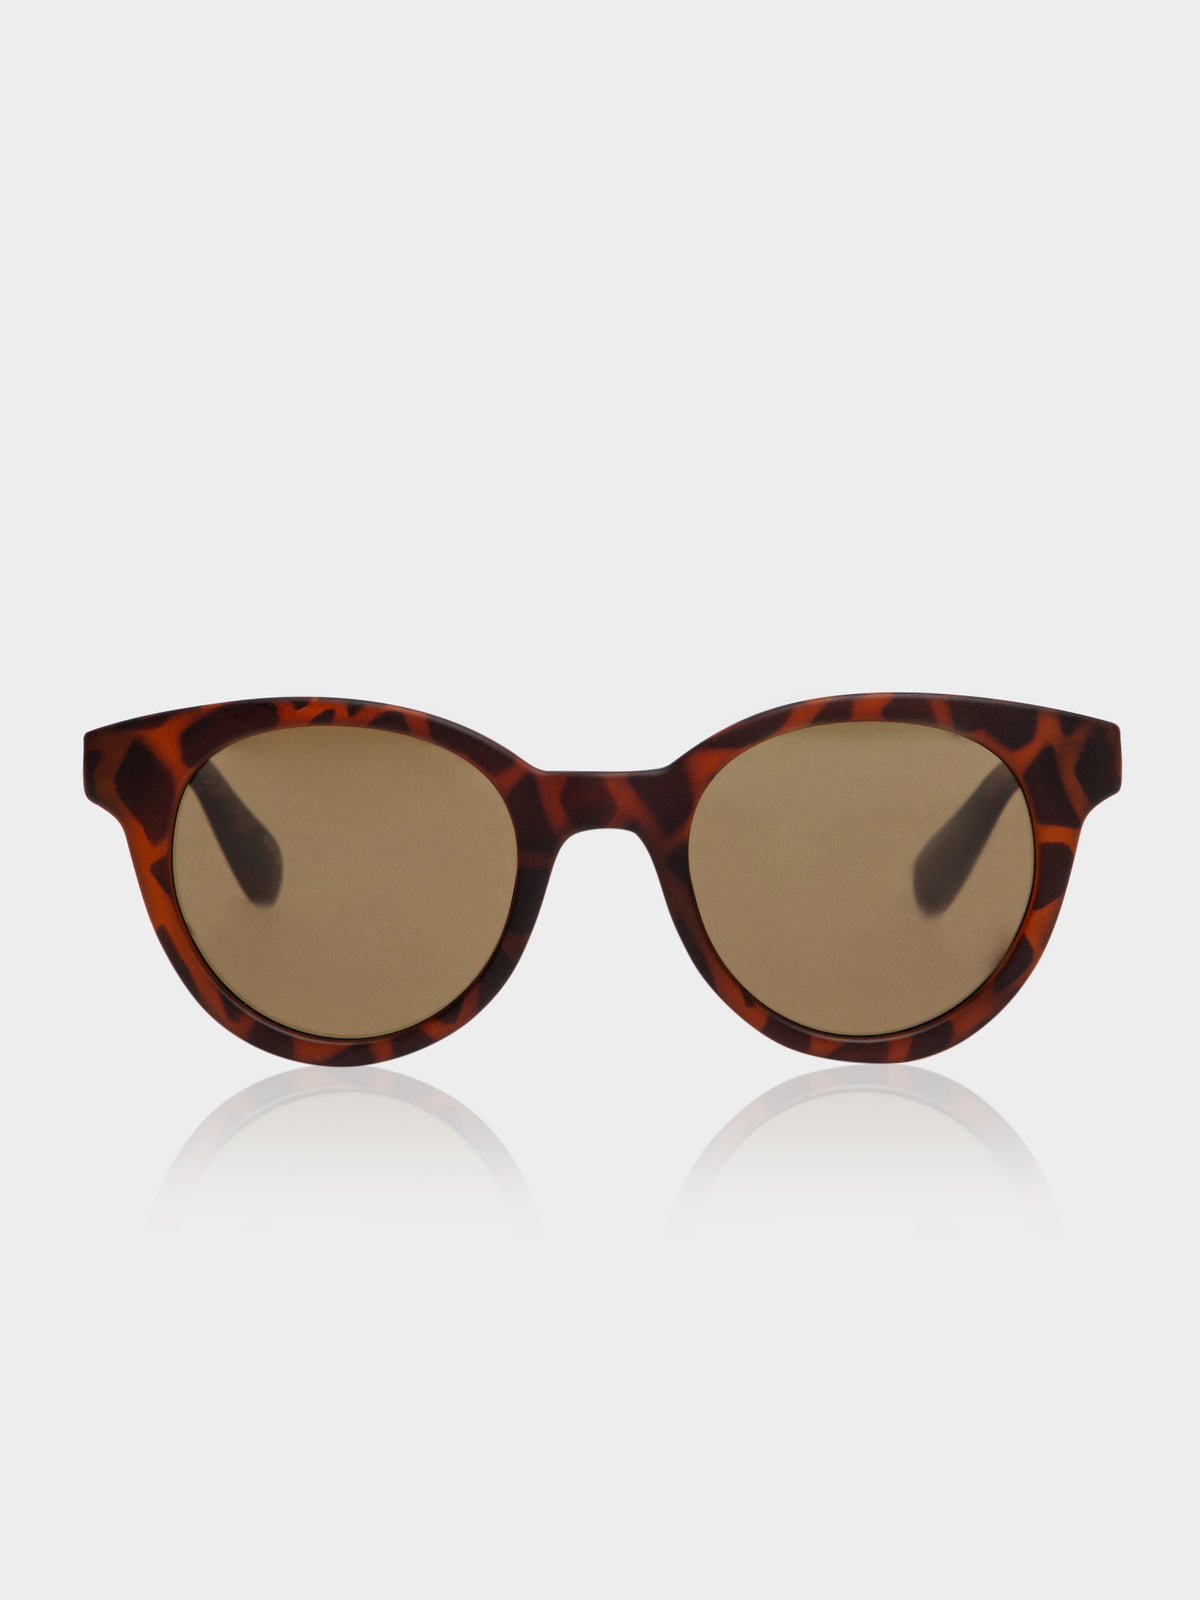 Park TLM3 Polished Sunglasses in Tortoise Shell